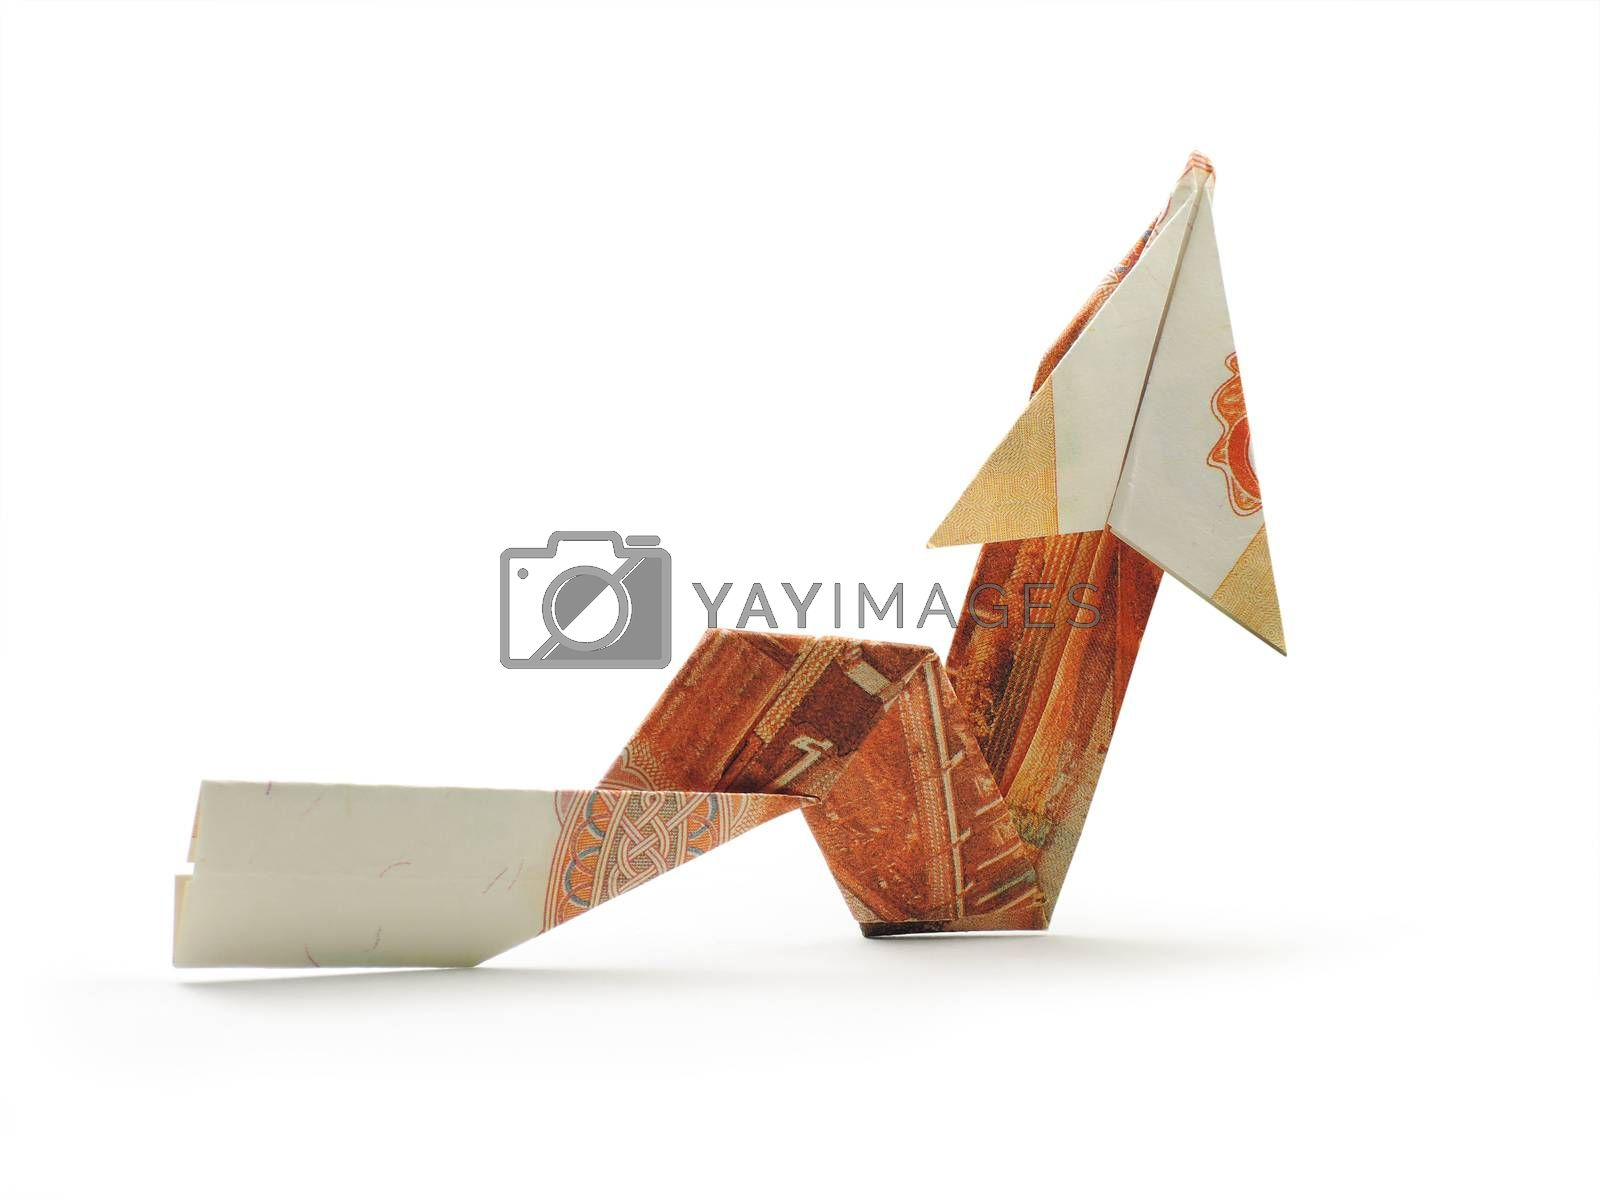 origami arrow five thousand ruble note